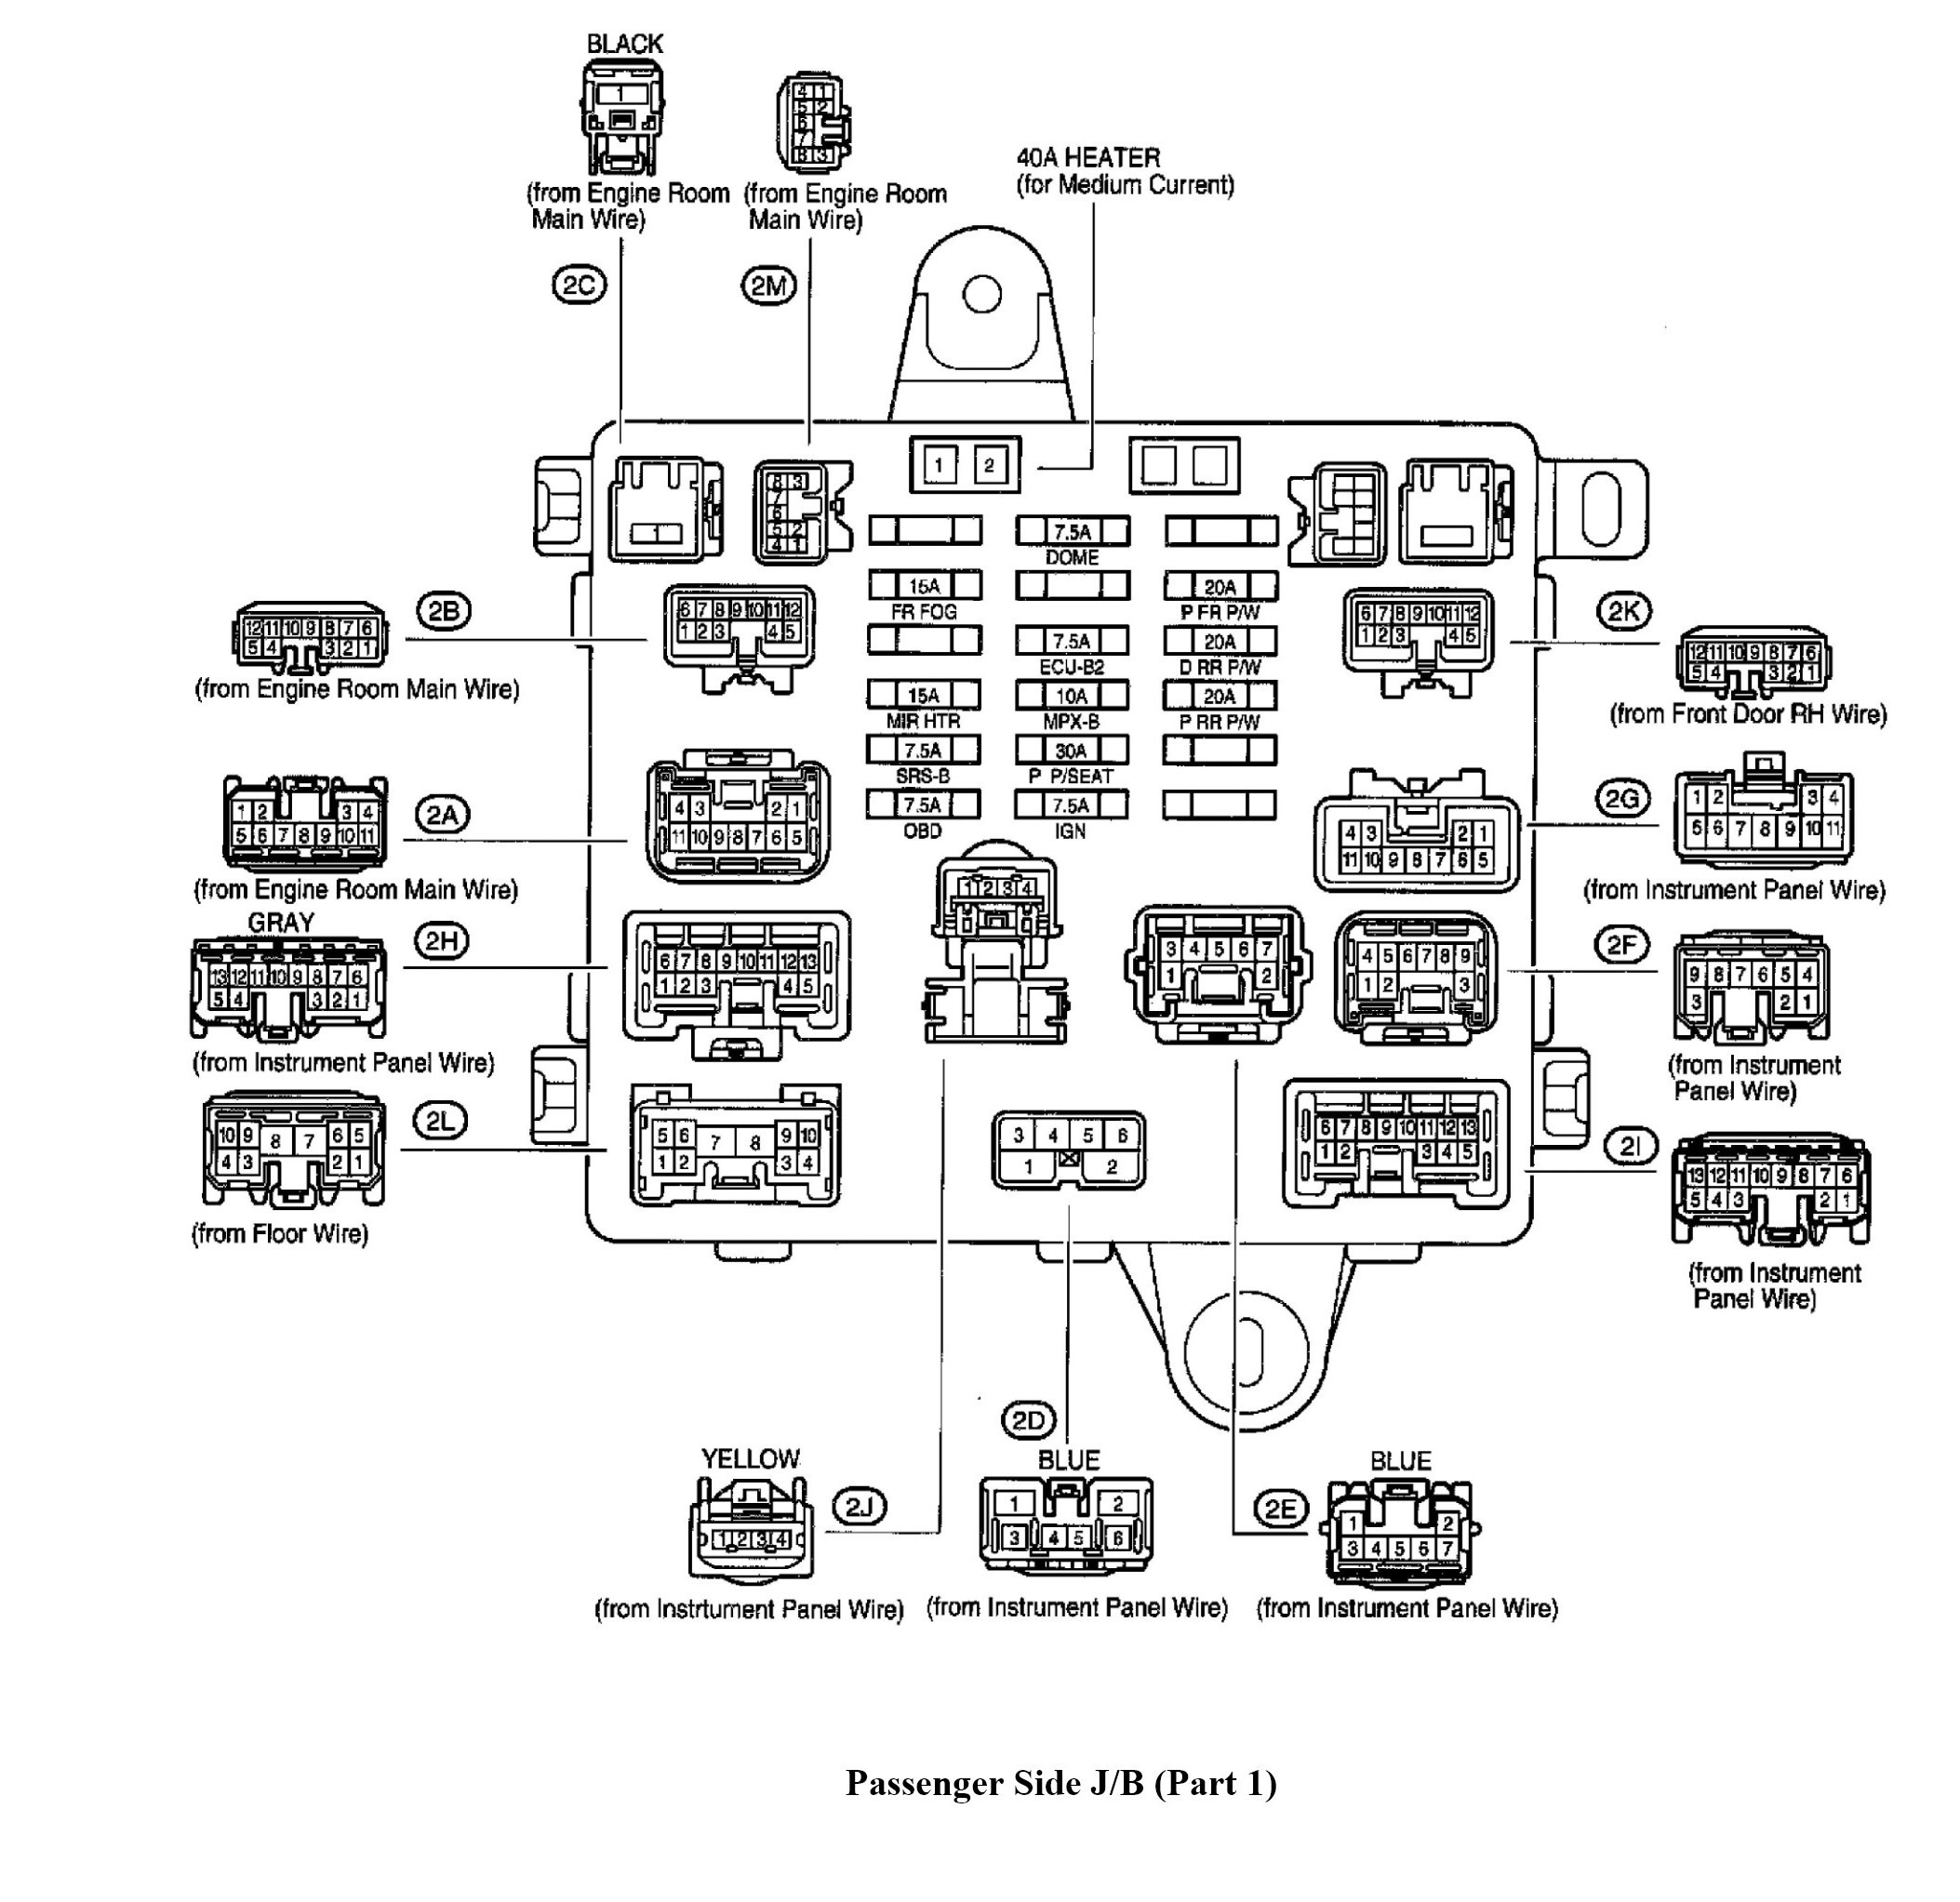 Fuse Diagram For Lexu Es300